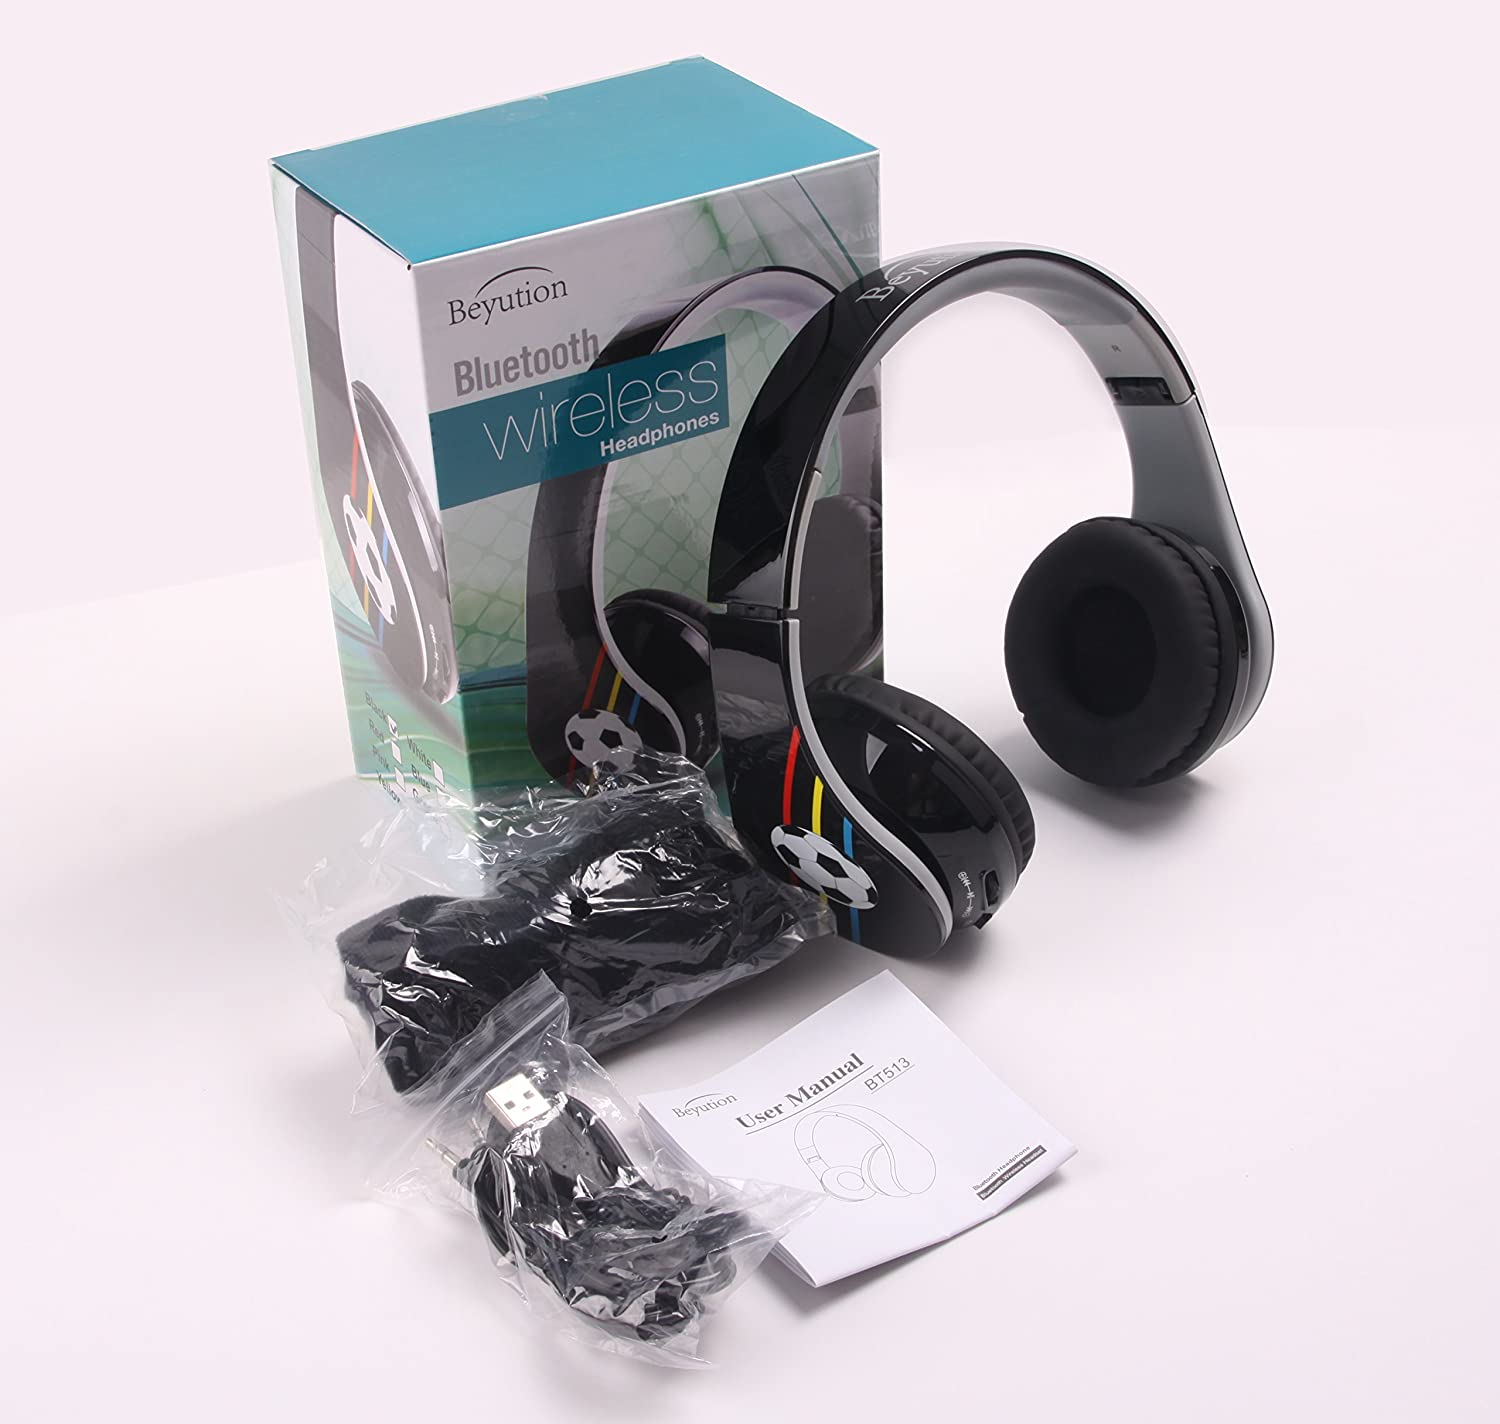 New Bluetooth 4.0 Headphones -Over-Ear- HiFi Stereo-with Clear Micphone- Retail Packages-with Football Images-Best Gift-Back to School Gift-with Retail Package (Black)